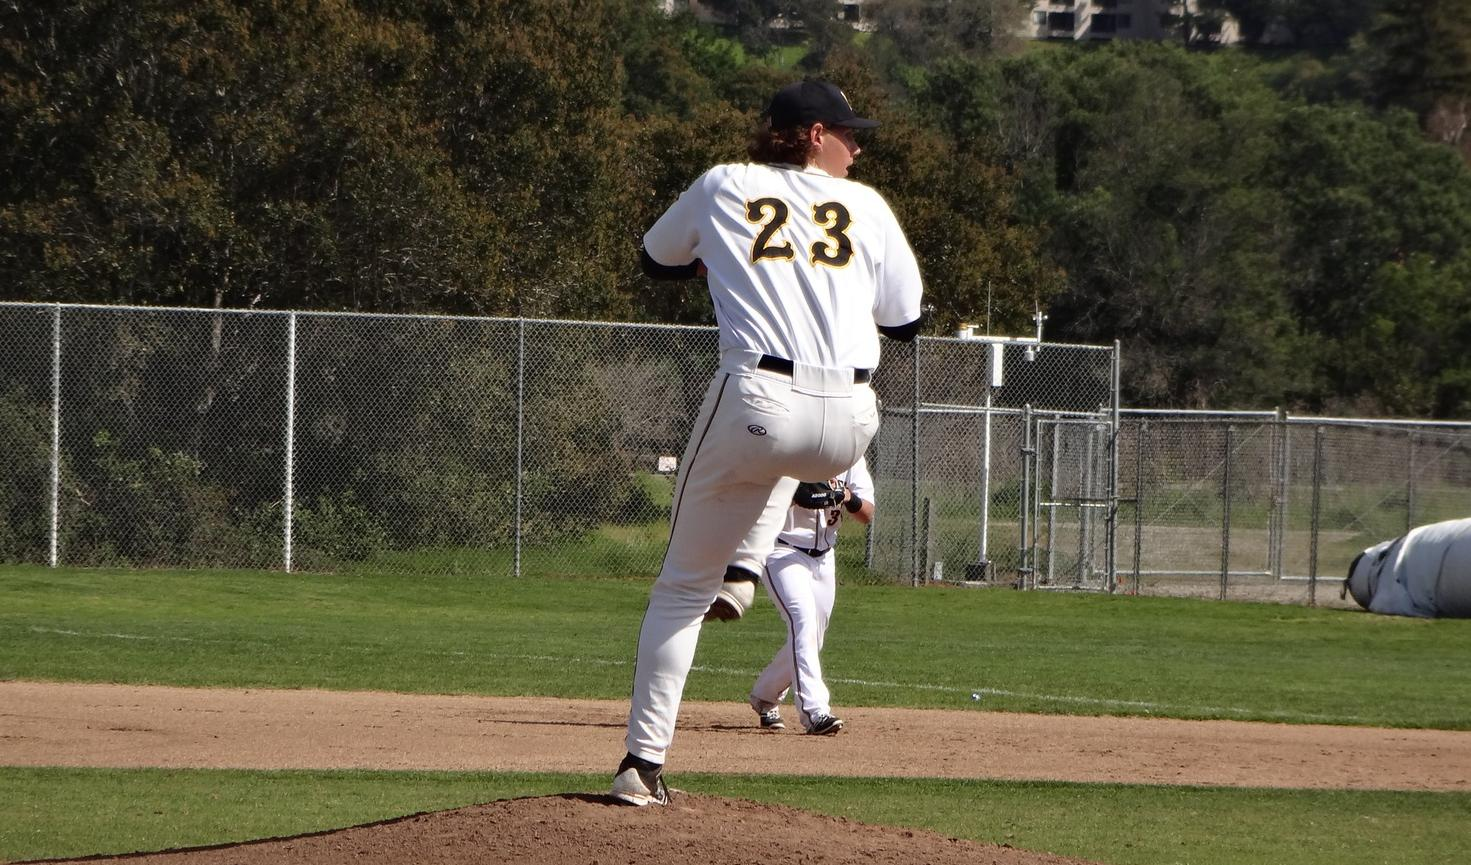 College of Marin Baseball Demolishes Contra Costa 17-1